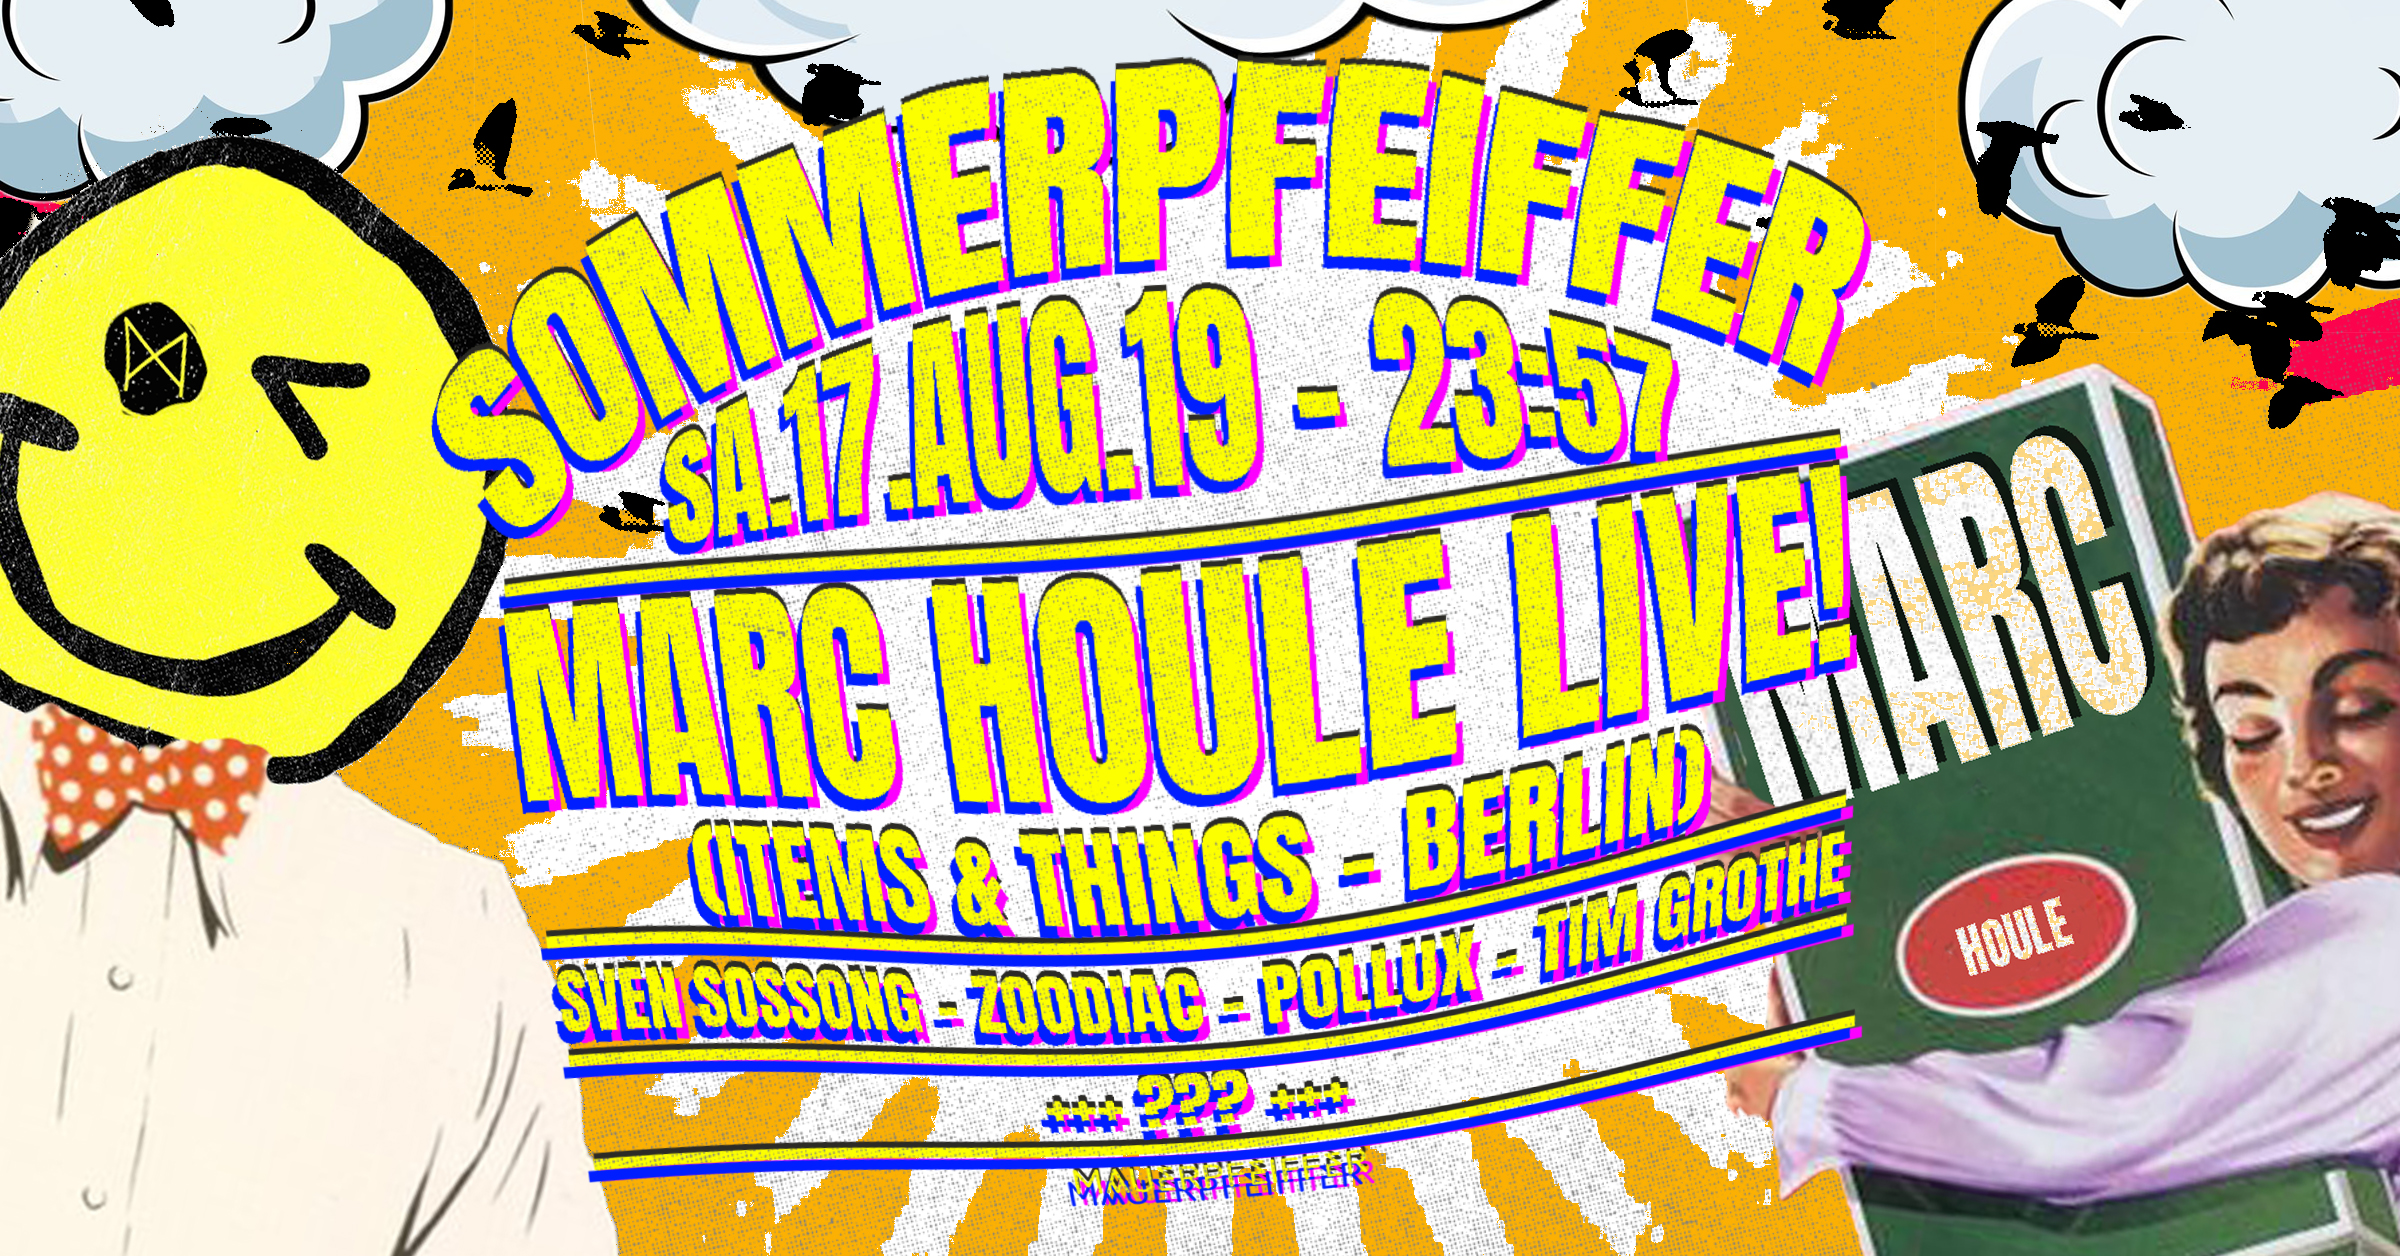 Sommerpfeiffer ✦ Marc Houle live! (Items & Things - Berlin)